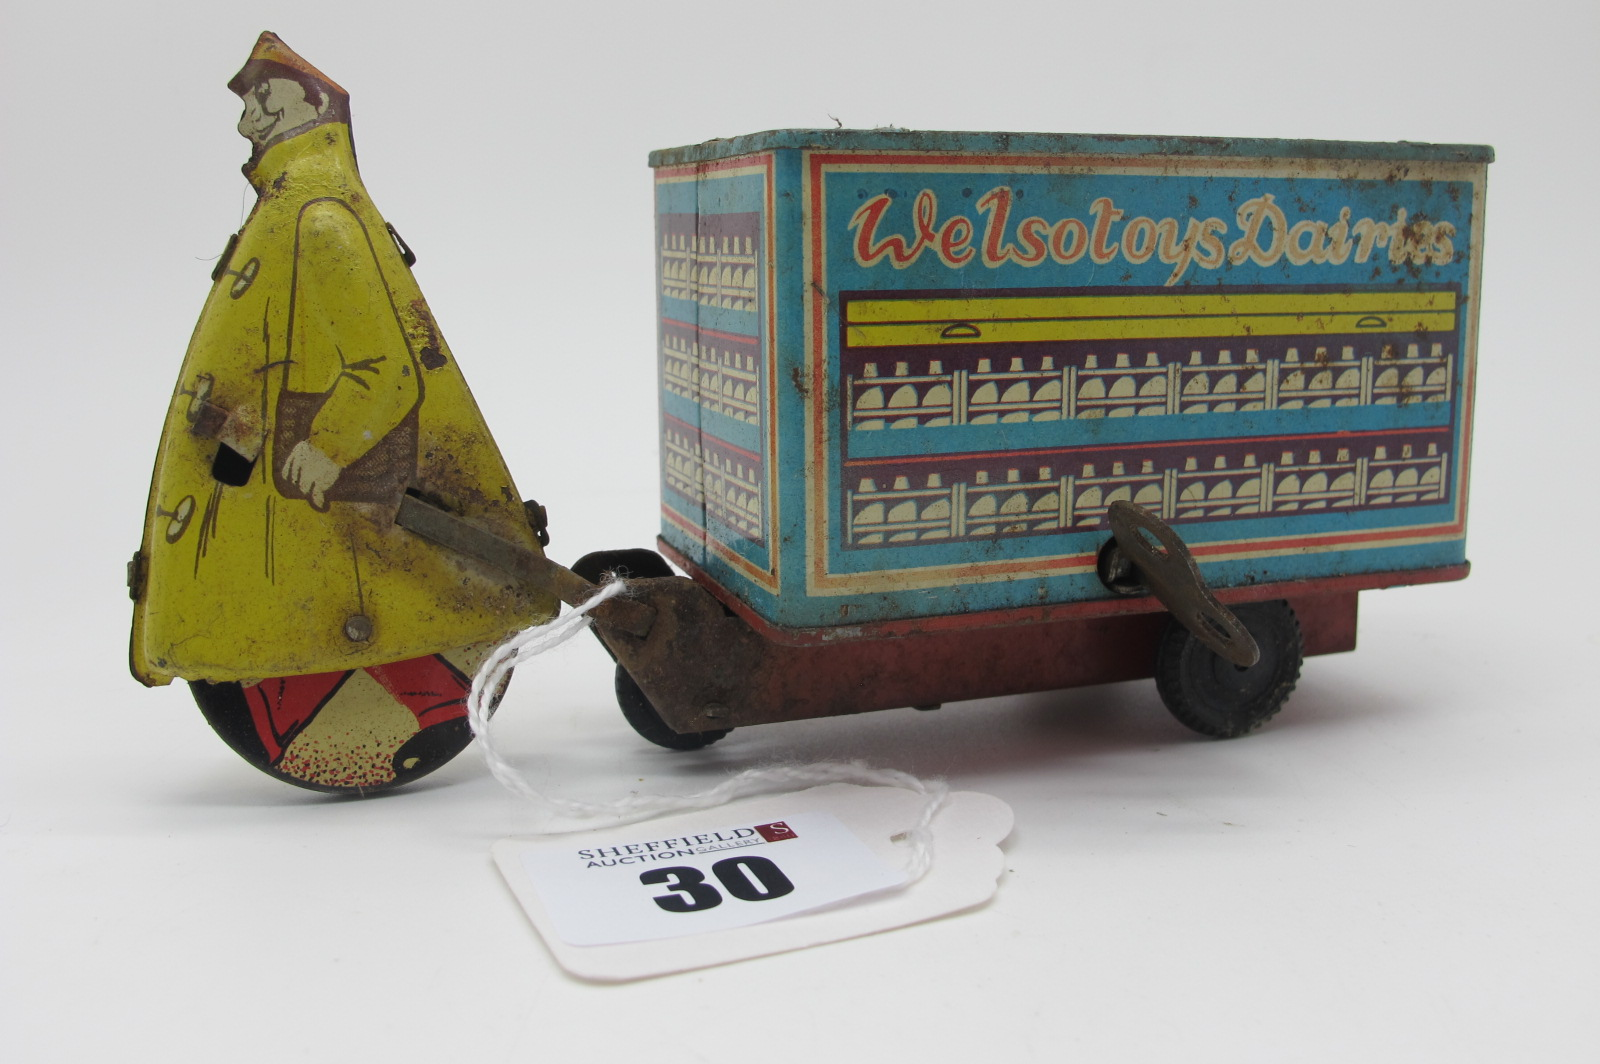 A Mid XX Century Tinplate/Clockwork 'Welsotoys Dairies' Milk Cart, some rusting and wear to places.